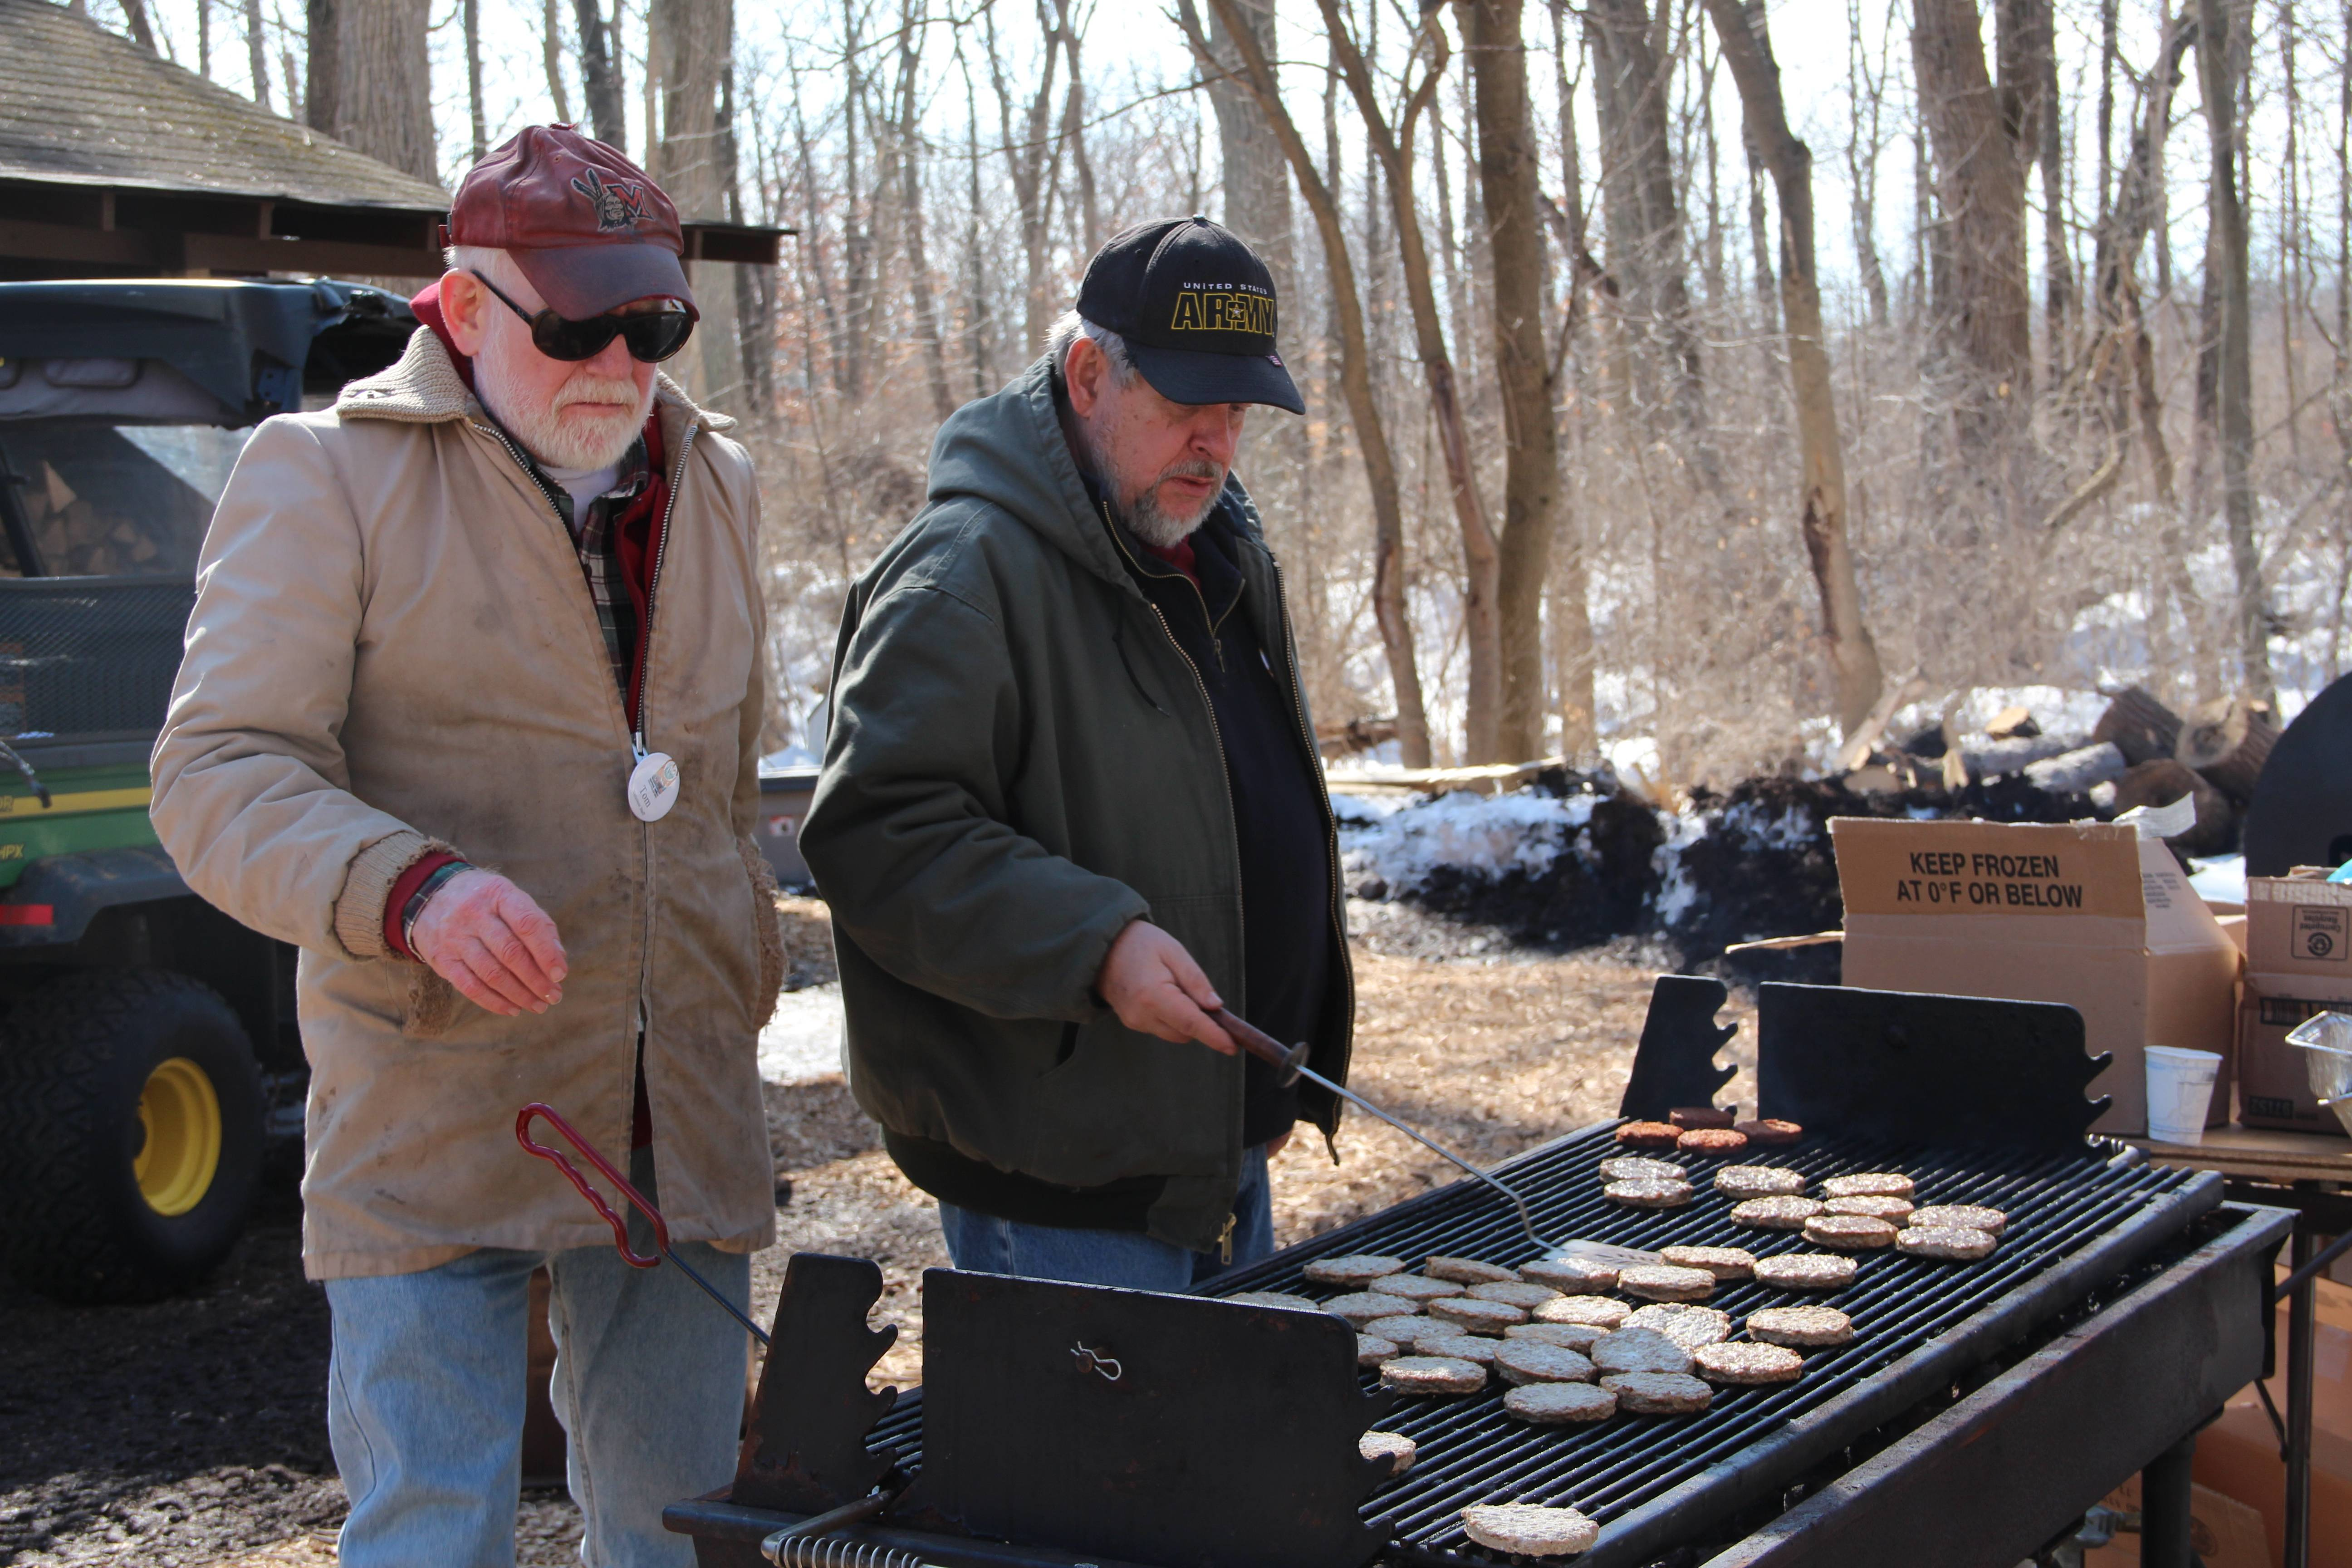 Volunteers have many opportunities to contribute to the Schaumburg Park District including flipping pancakes and sausage at the annual Sugar Bush Fair.Schaumburg Park District